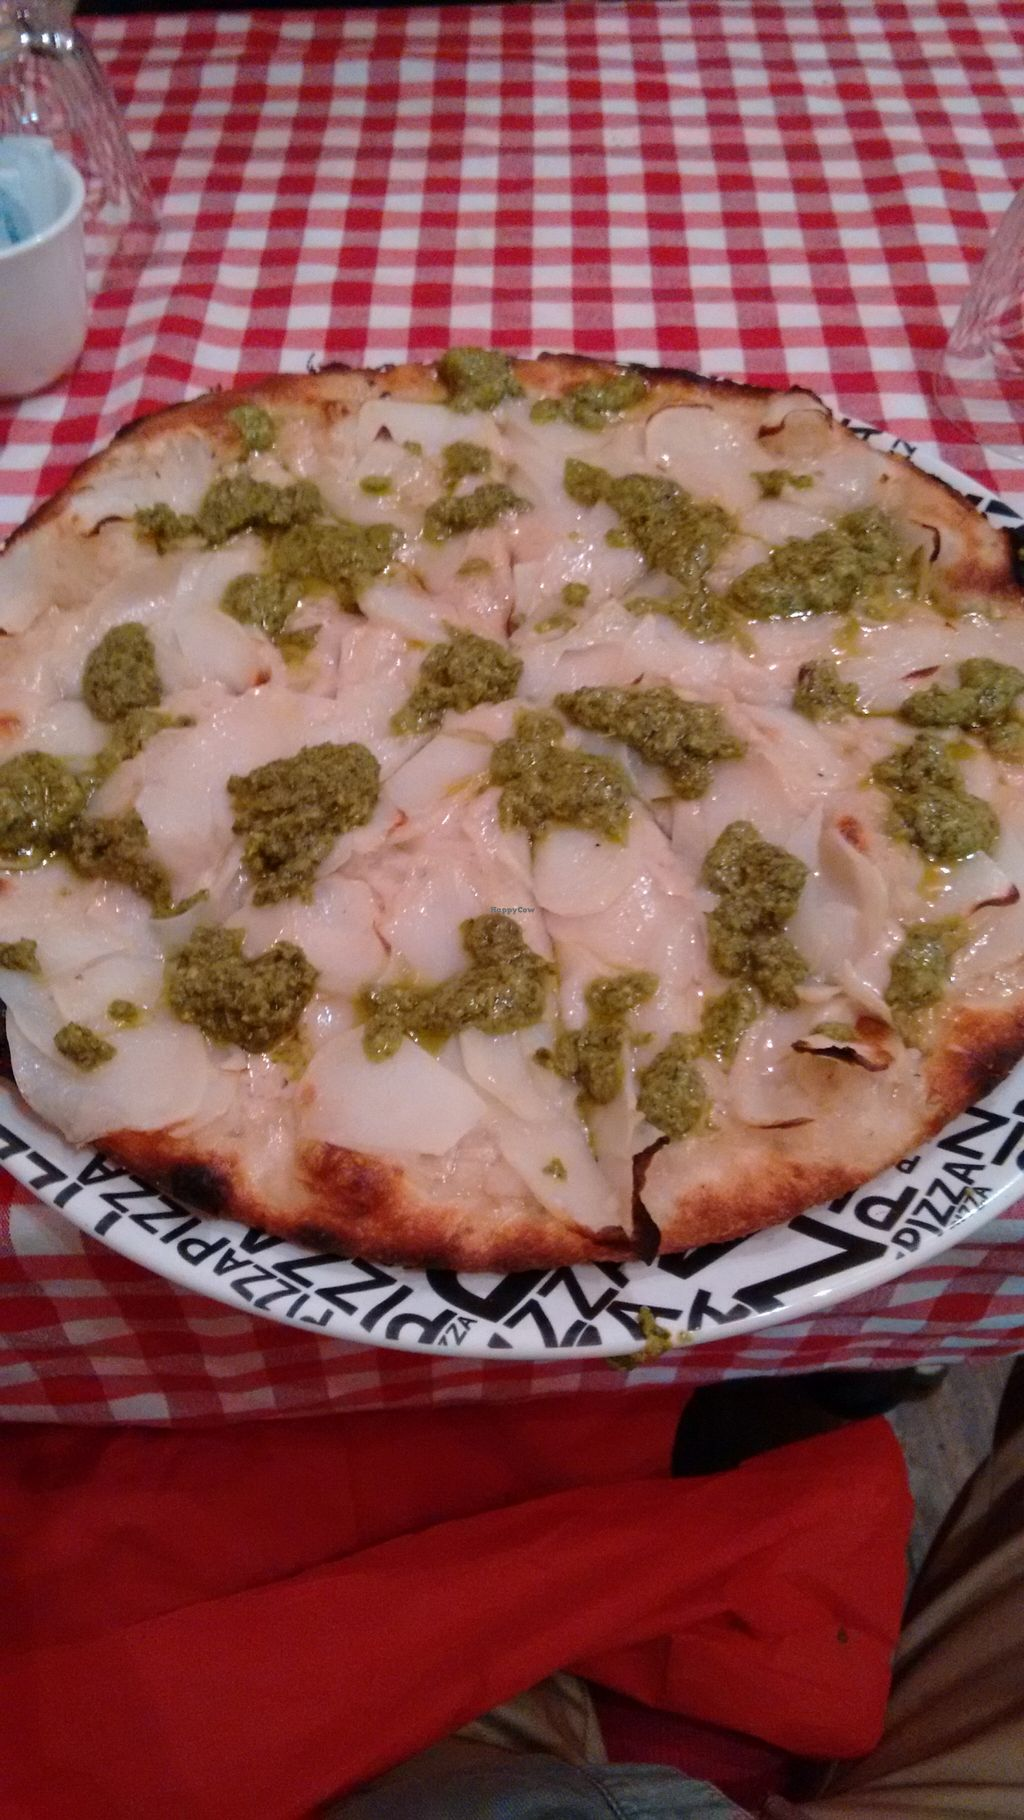 "Photo of NovaPizza Vegetarian Kitchen  by <a href=""/members/profile/craigmc"">craigmc</a> <br/>Potato and home made pesto vegan pizza <br/> February 18, 2016  - <a href='/contact/abuse/image/61590/136808'>Report</a>"